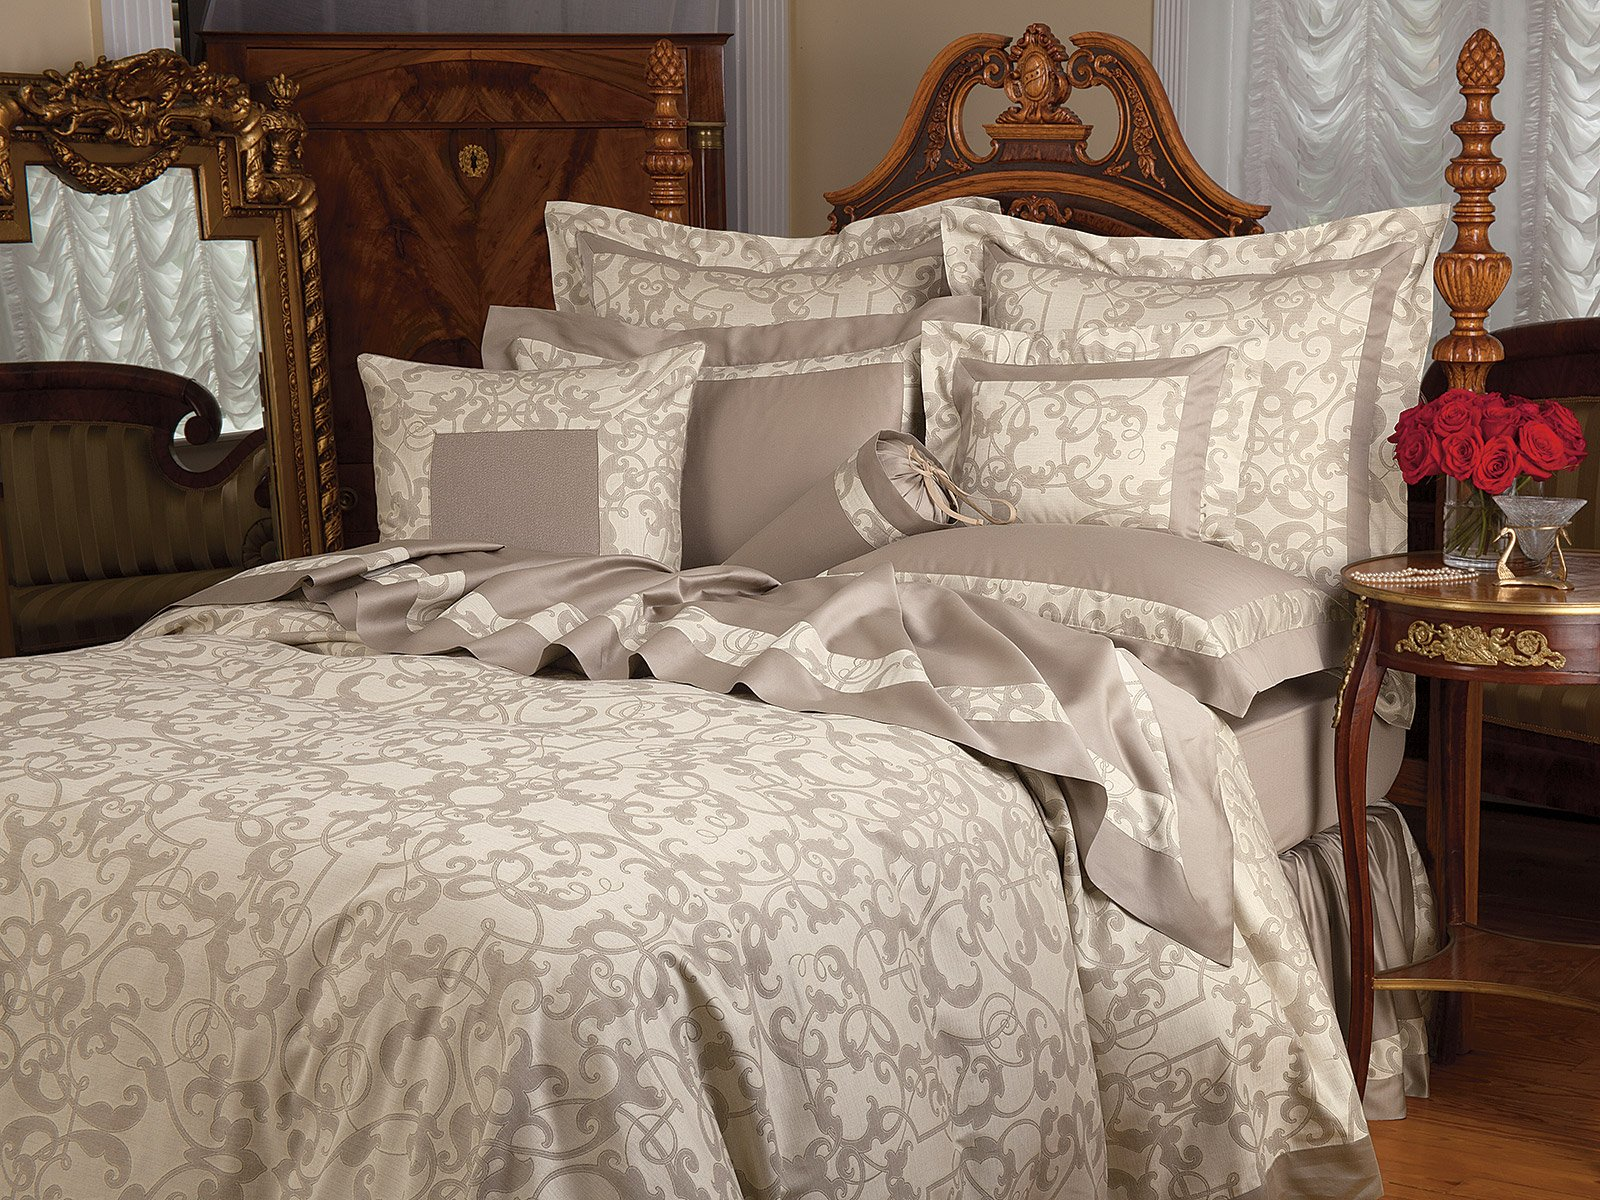 Royalty_Taupe_0490.jpg